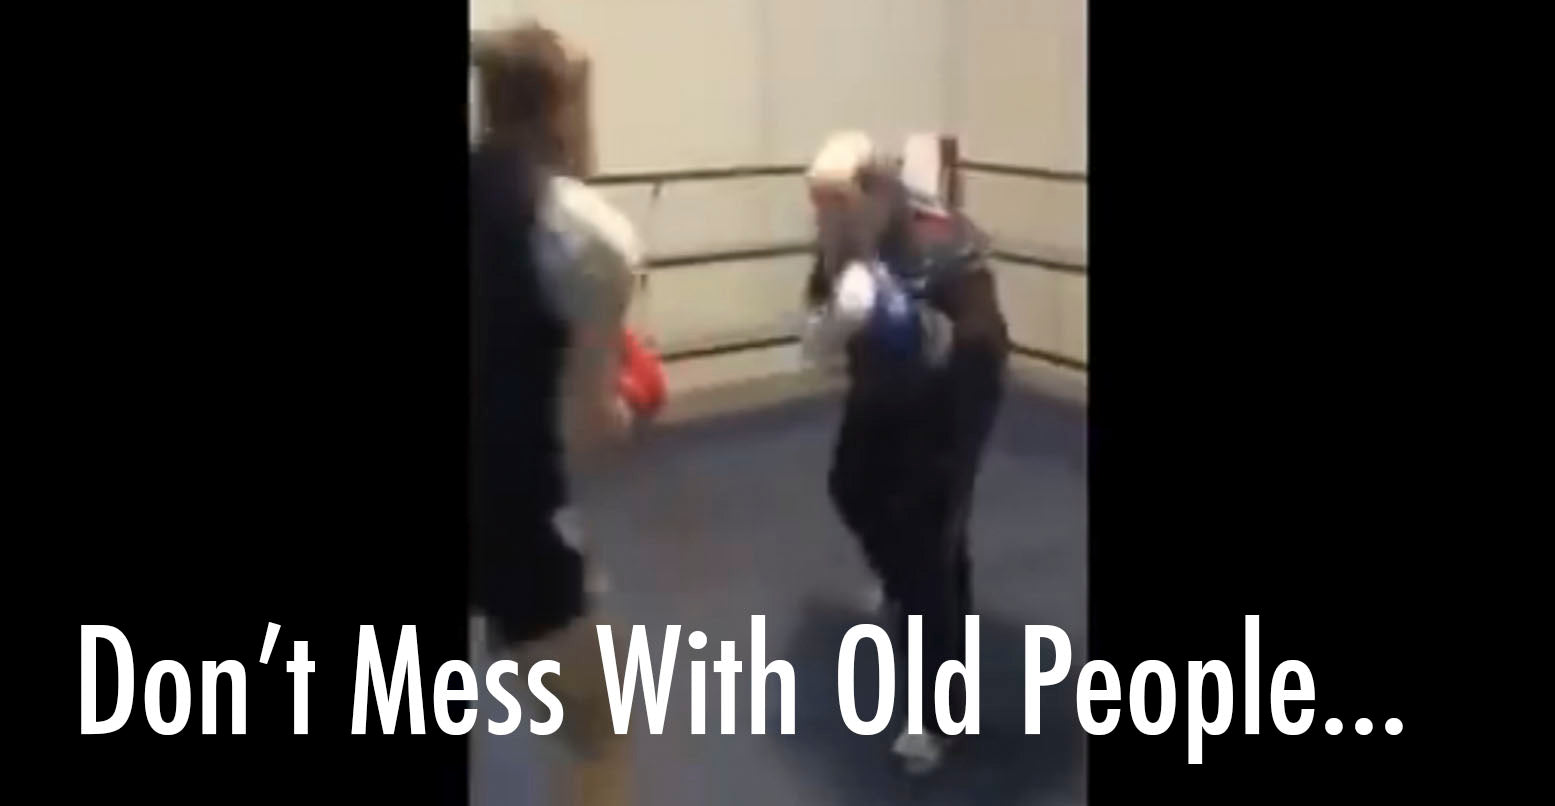 VIDEO: Don't Mess With Old People...